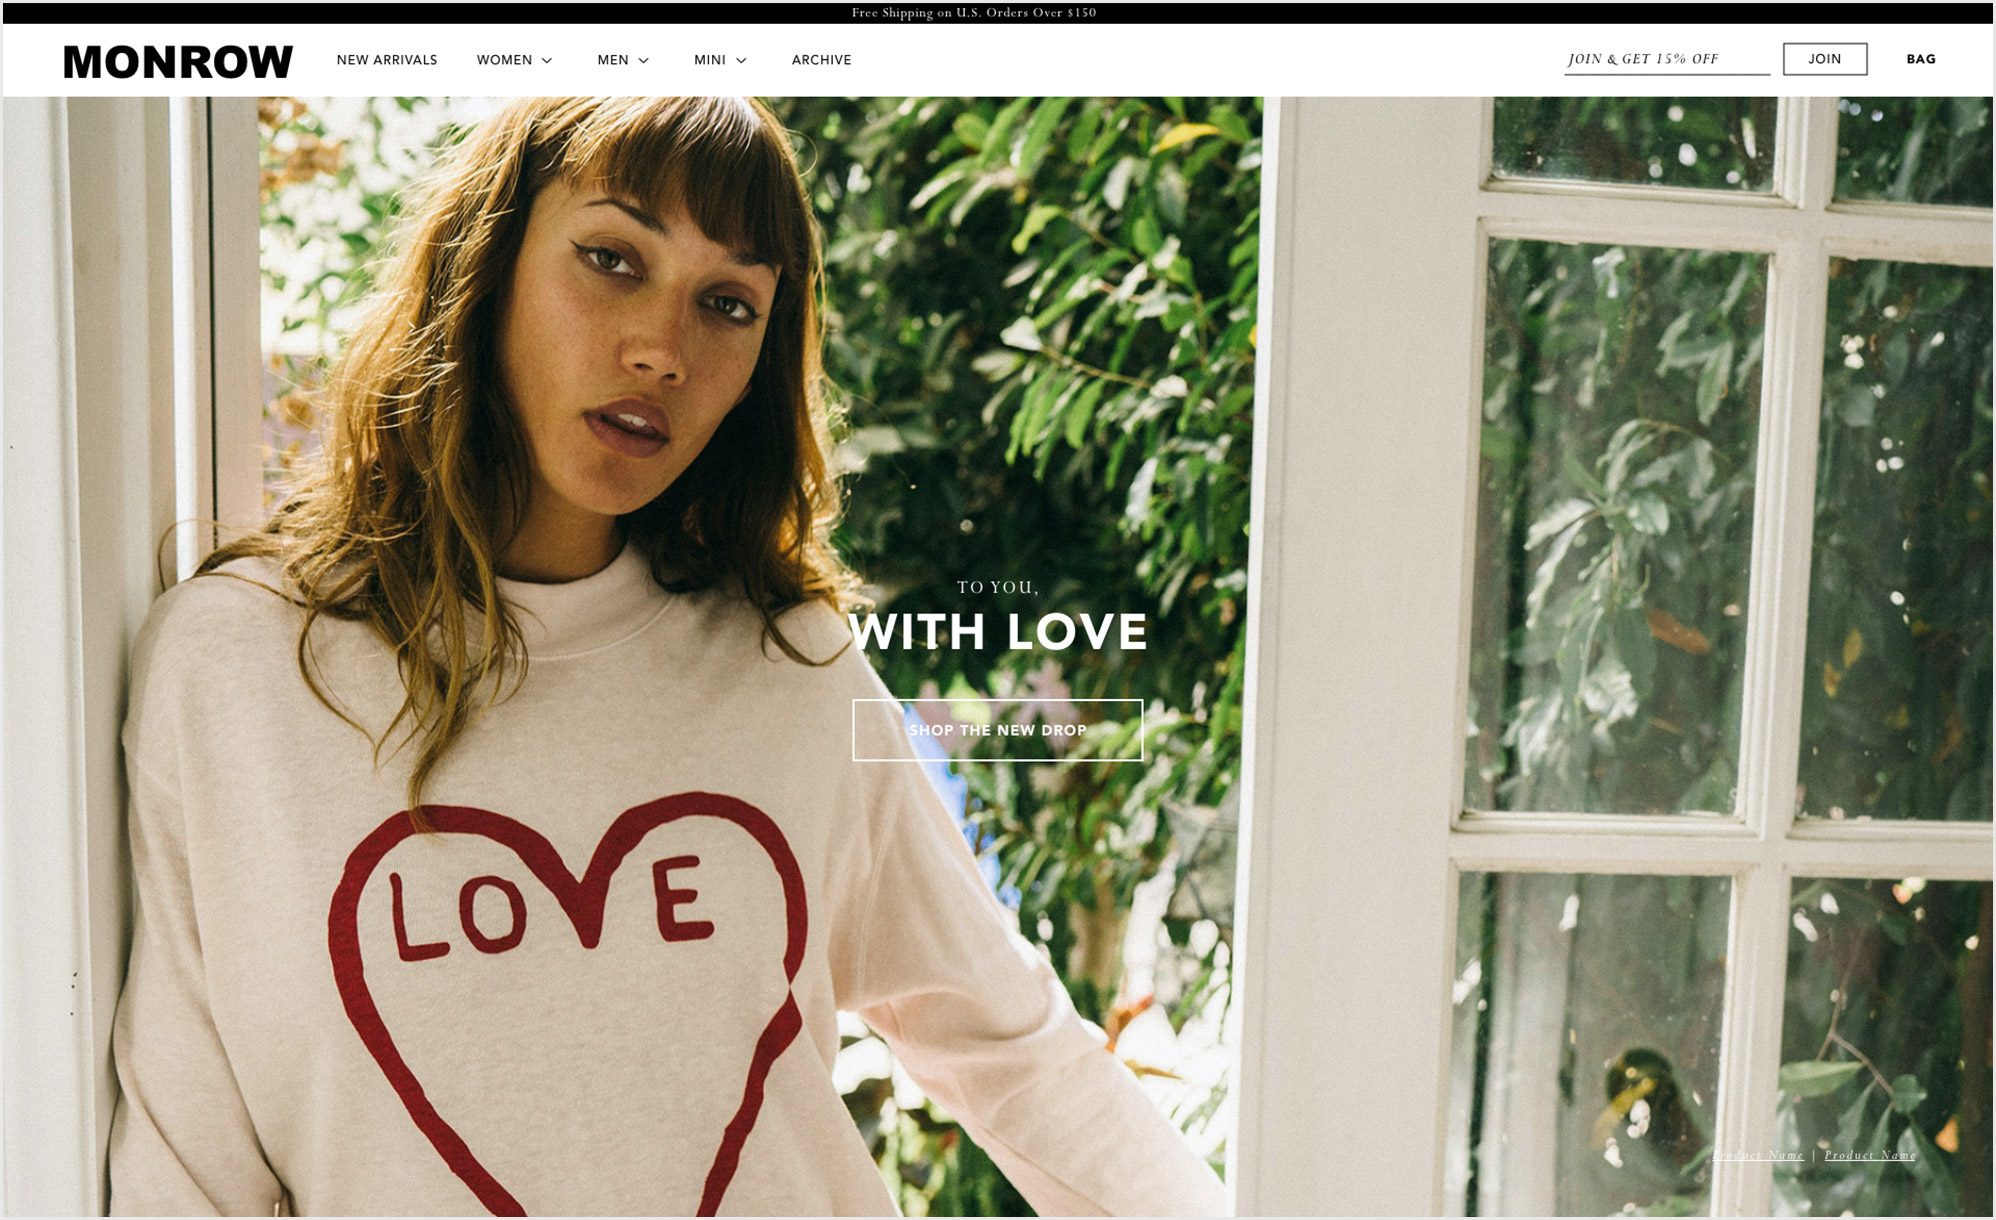 A Shopify ecommmerce Website Design of a fashion company